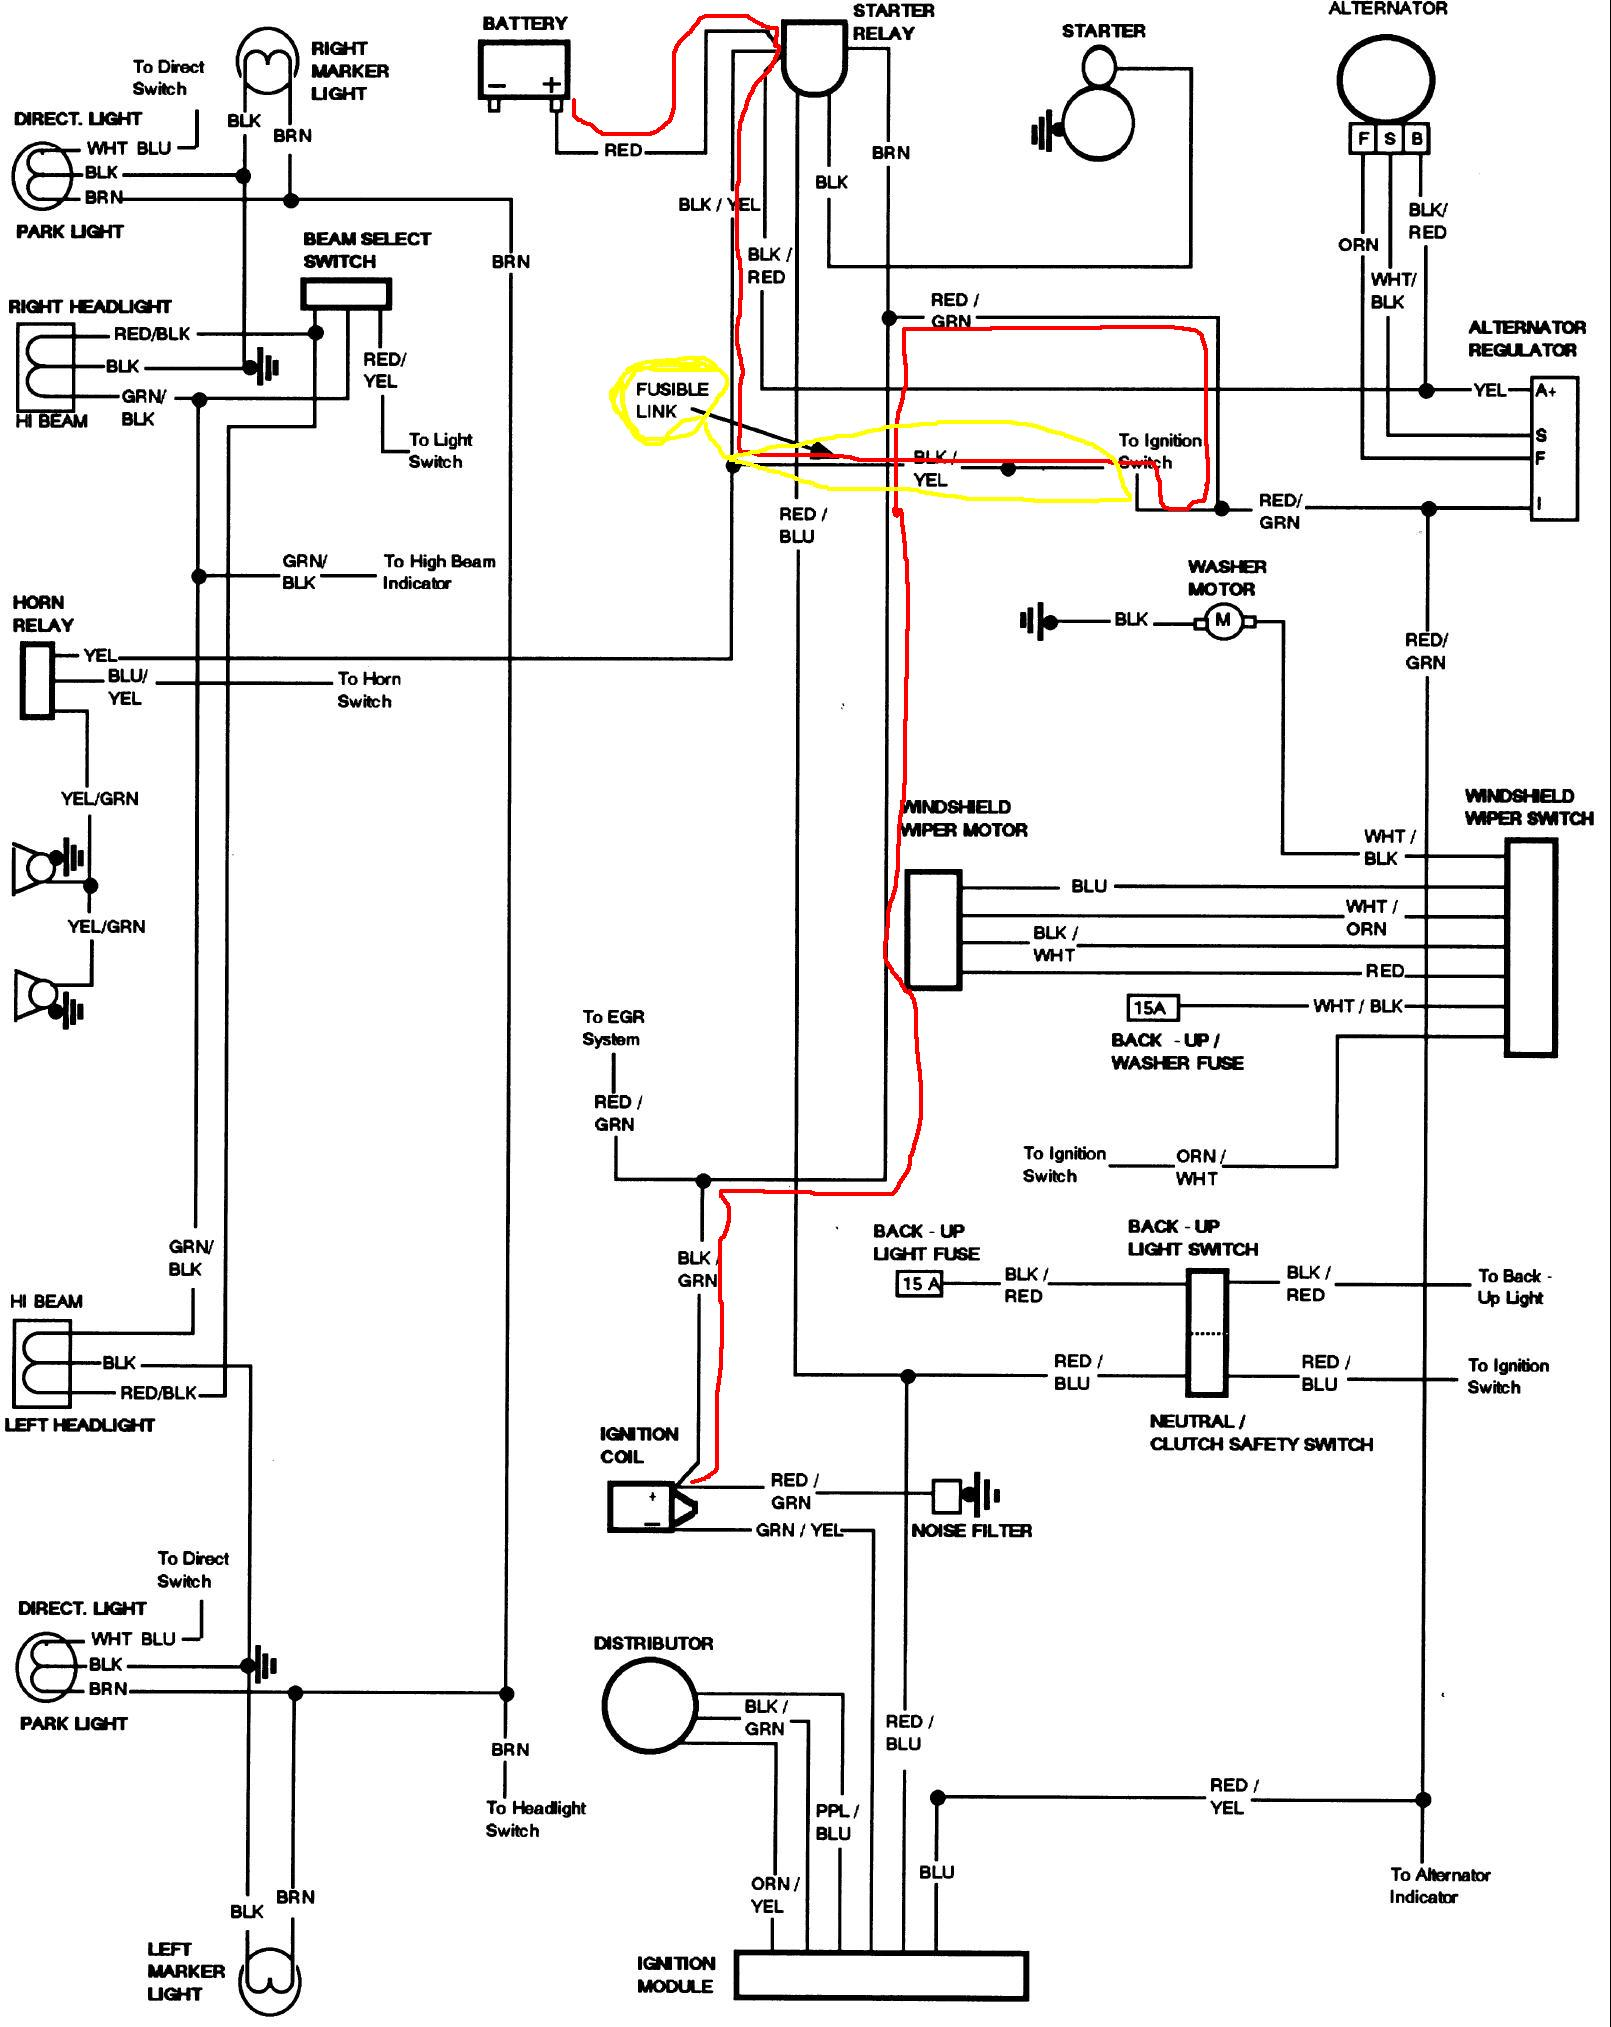 wiring diagram car voltage regulator & top basic wiring diagram for 94 ford f-150 wiring diagram 75 f150 voltage regulator parts at it and hoping it fixes it rh justanswer com car voltage regulator diagram 1978 f150 voltage regulator wiring